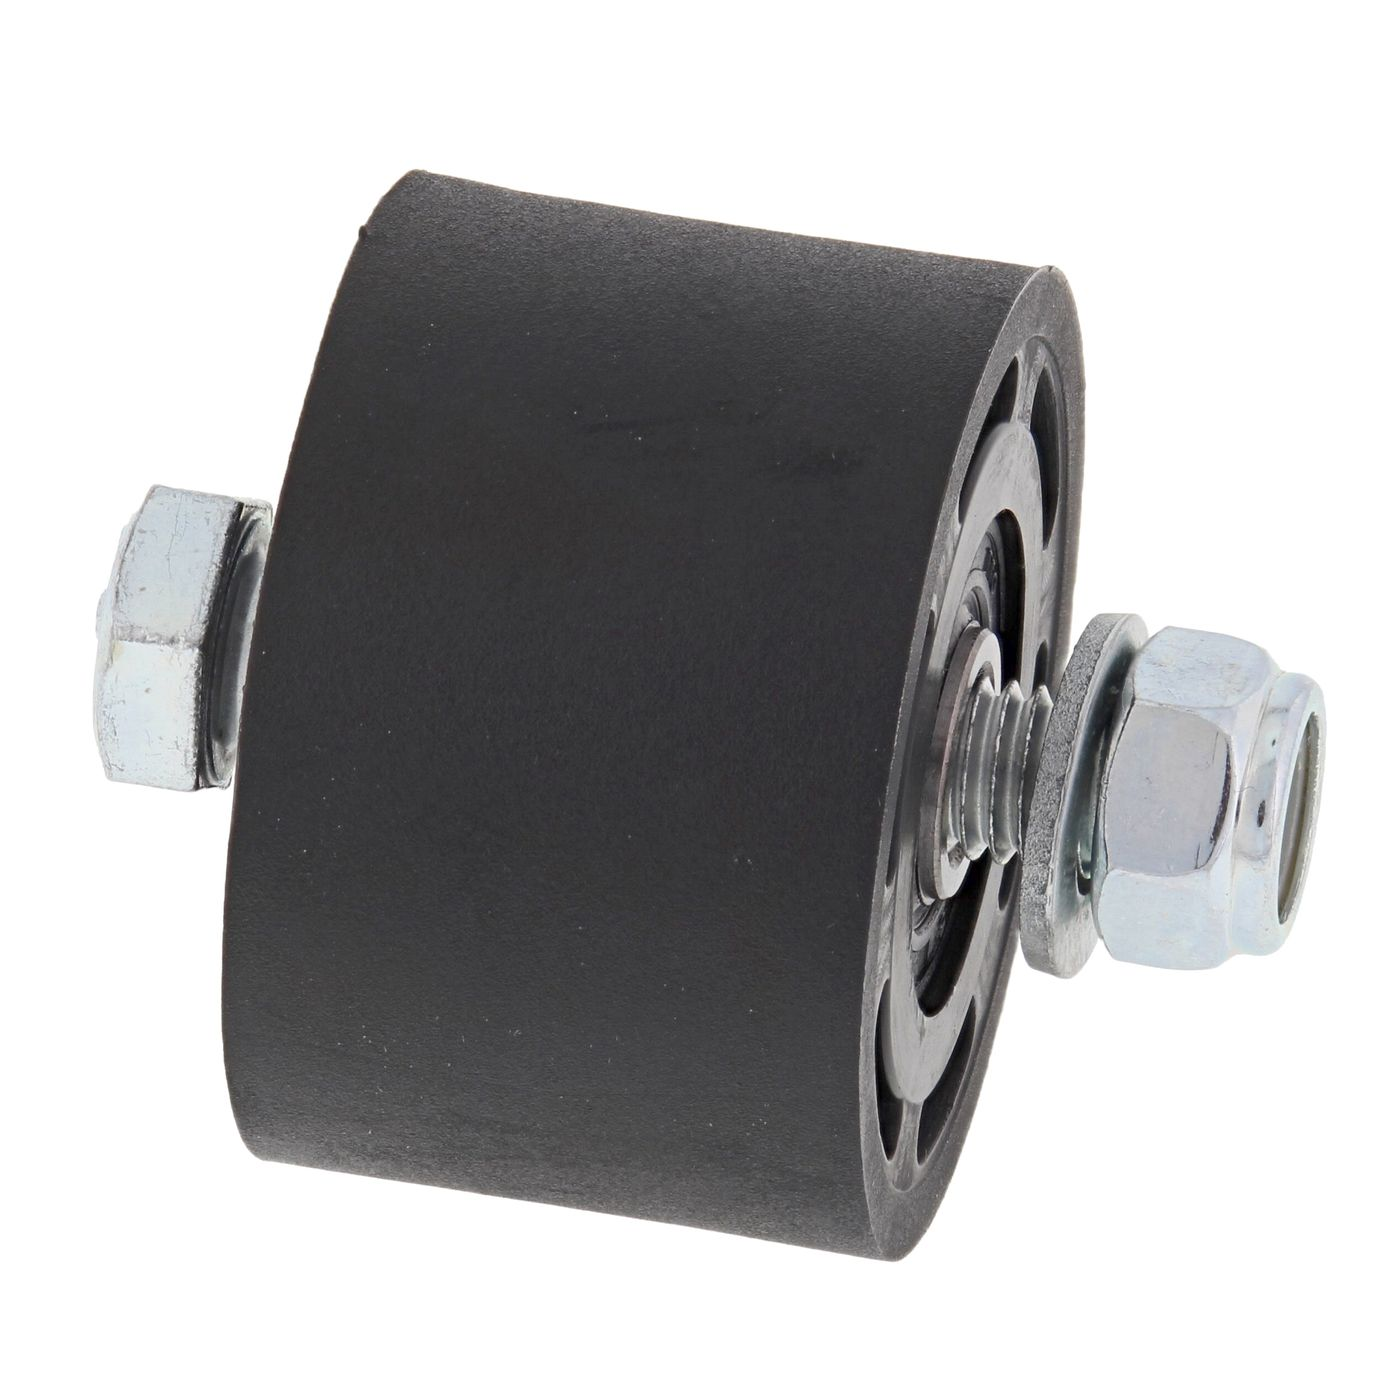 Wrp Chain Rollers - WRP795006 image